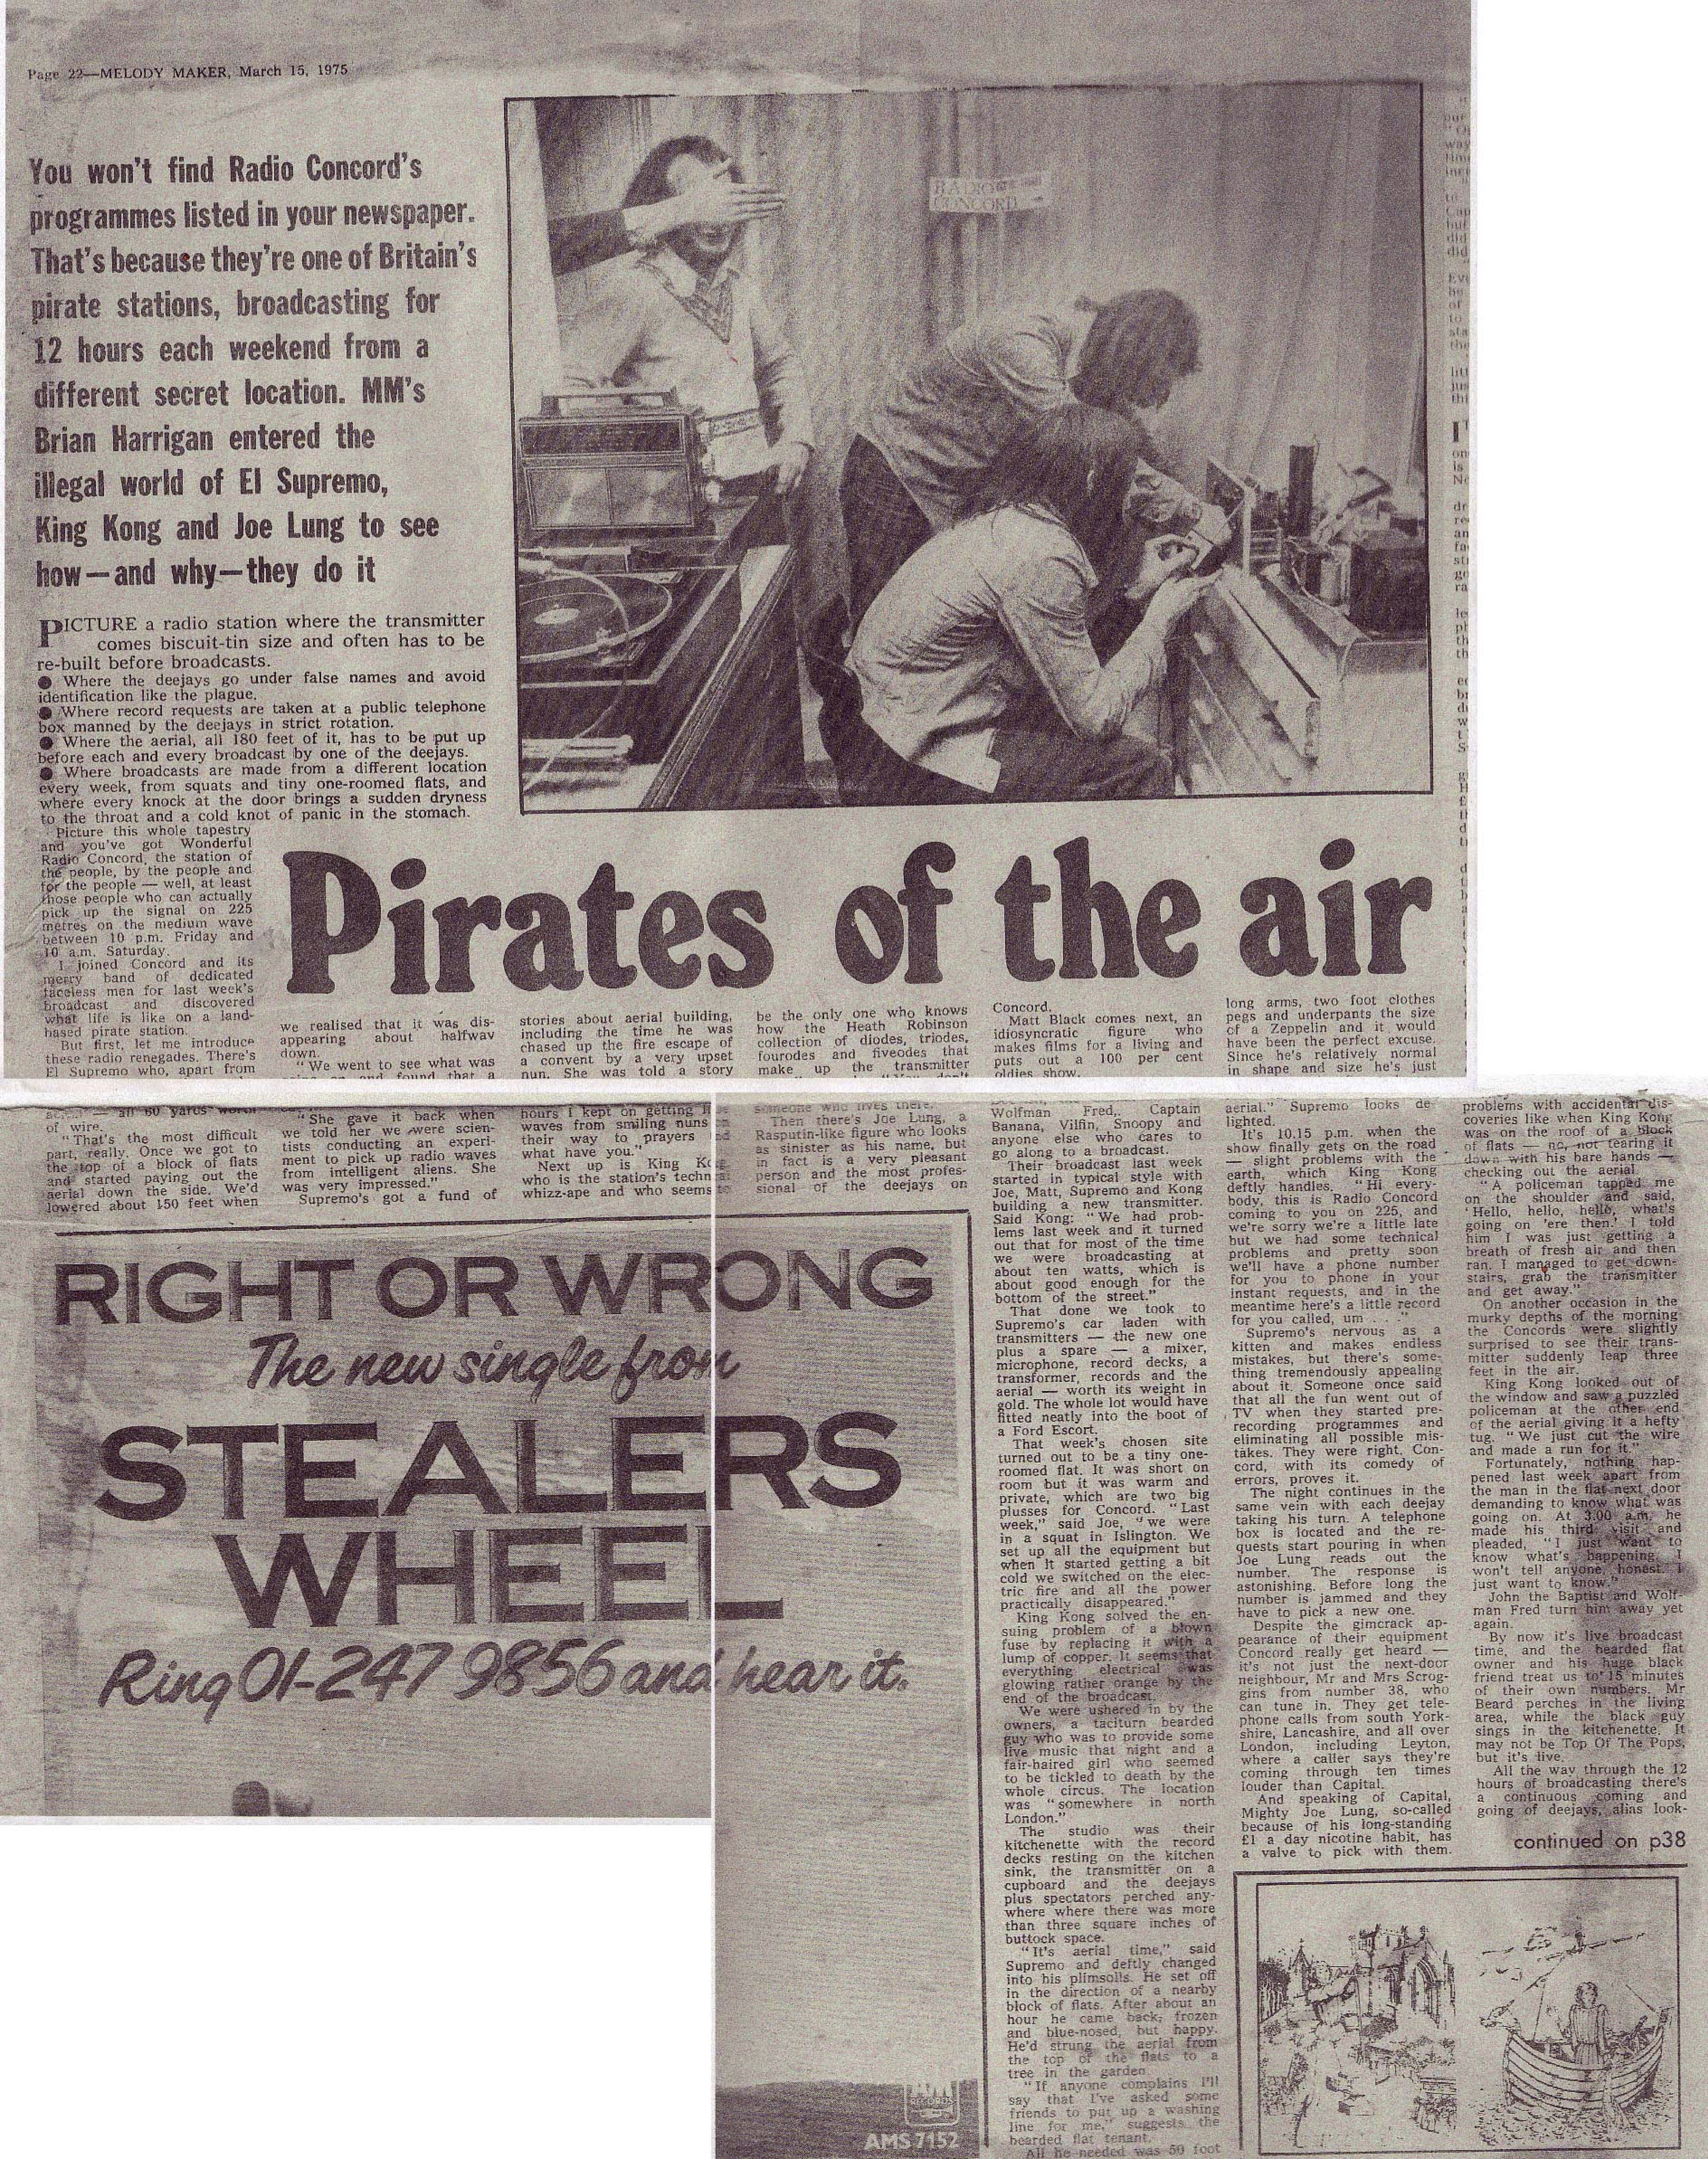 Pirate Radio Tommys Holiday Camp Vintage Melody Maker Wiring Diagram Article March 15 1975 P 18 22